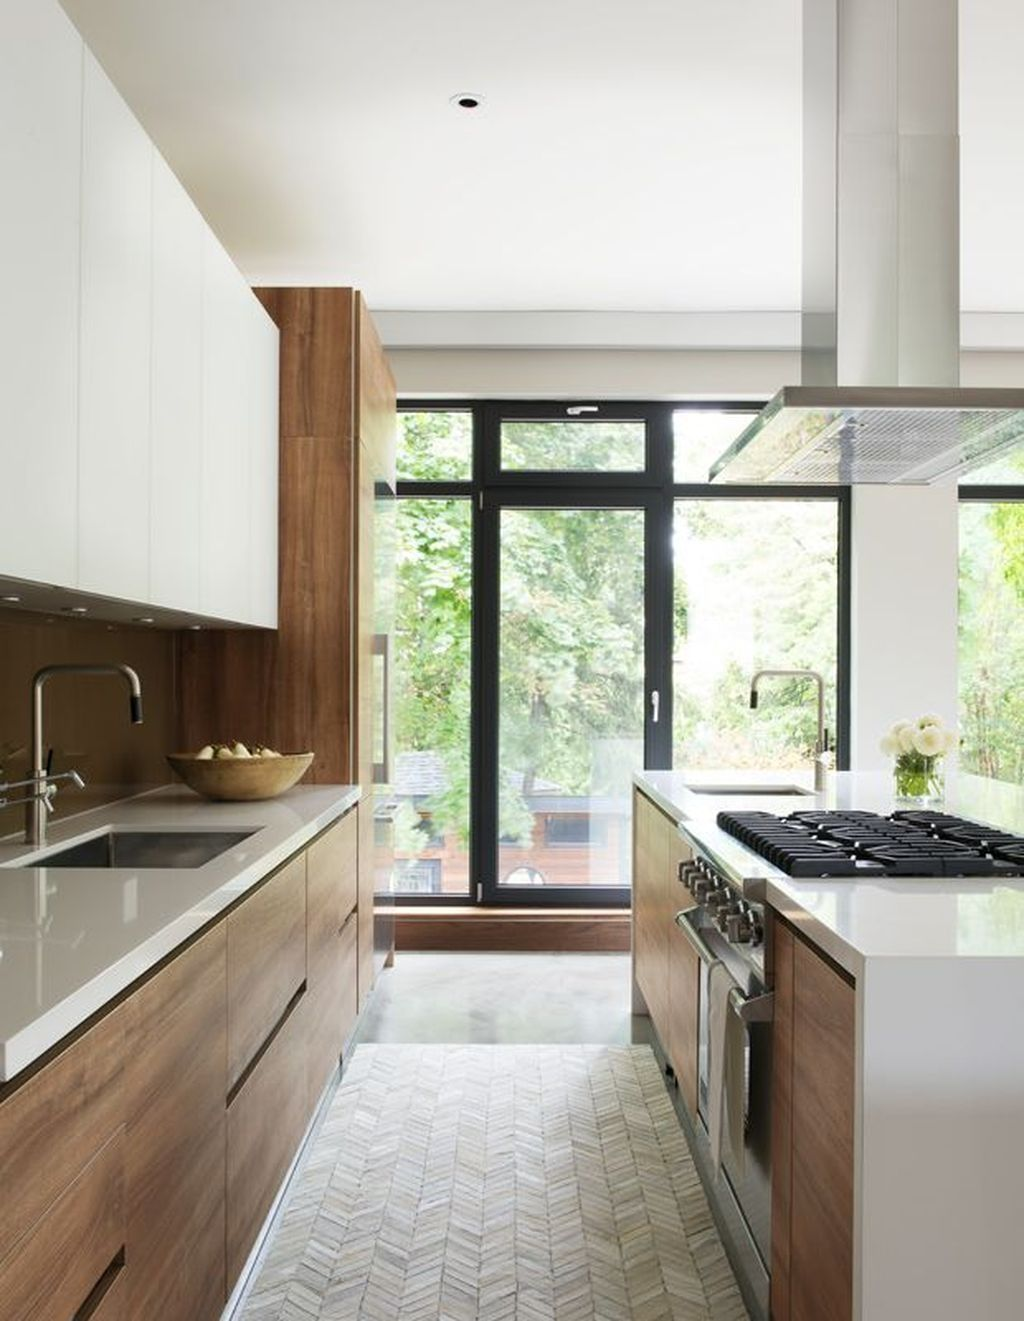 Fine 42 The Best Modern Kitchen Cabinets Ideas Perfect For Any Kitchen Design Fine Contemporary Kitchen Cabinets Modern Kitchen Design Kitchen Cabinet Design